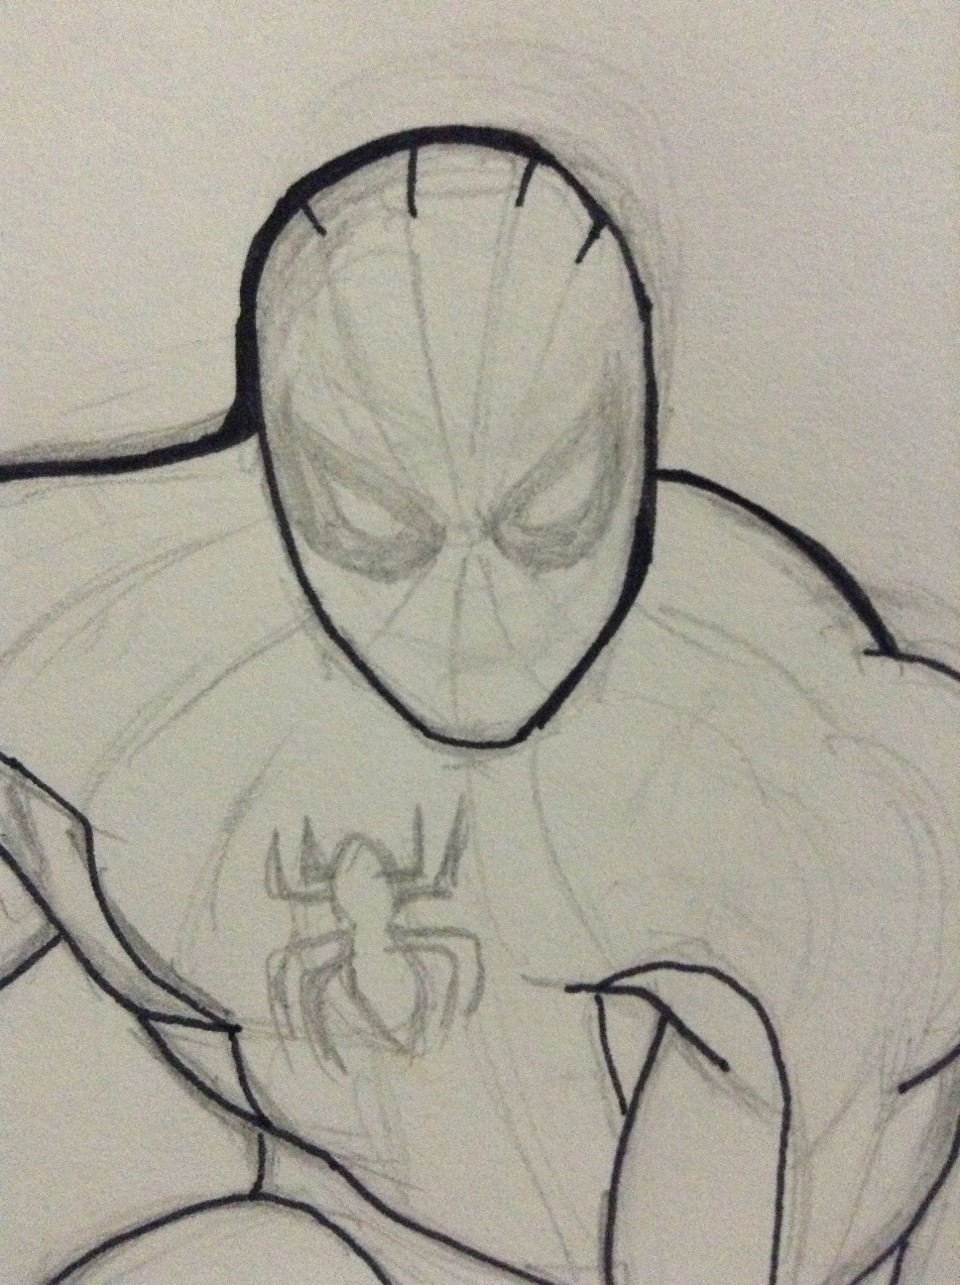 Sketch the face in greater detail-for easier outline. Detail the logo as well.